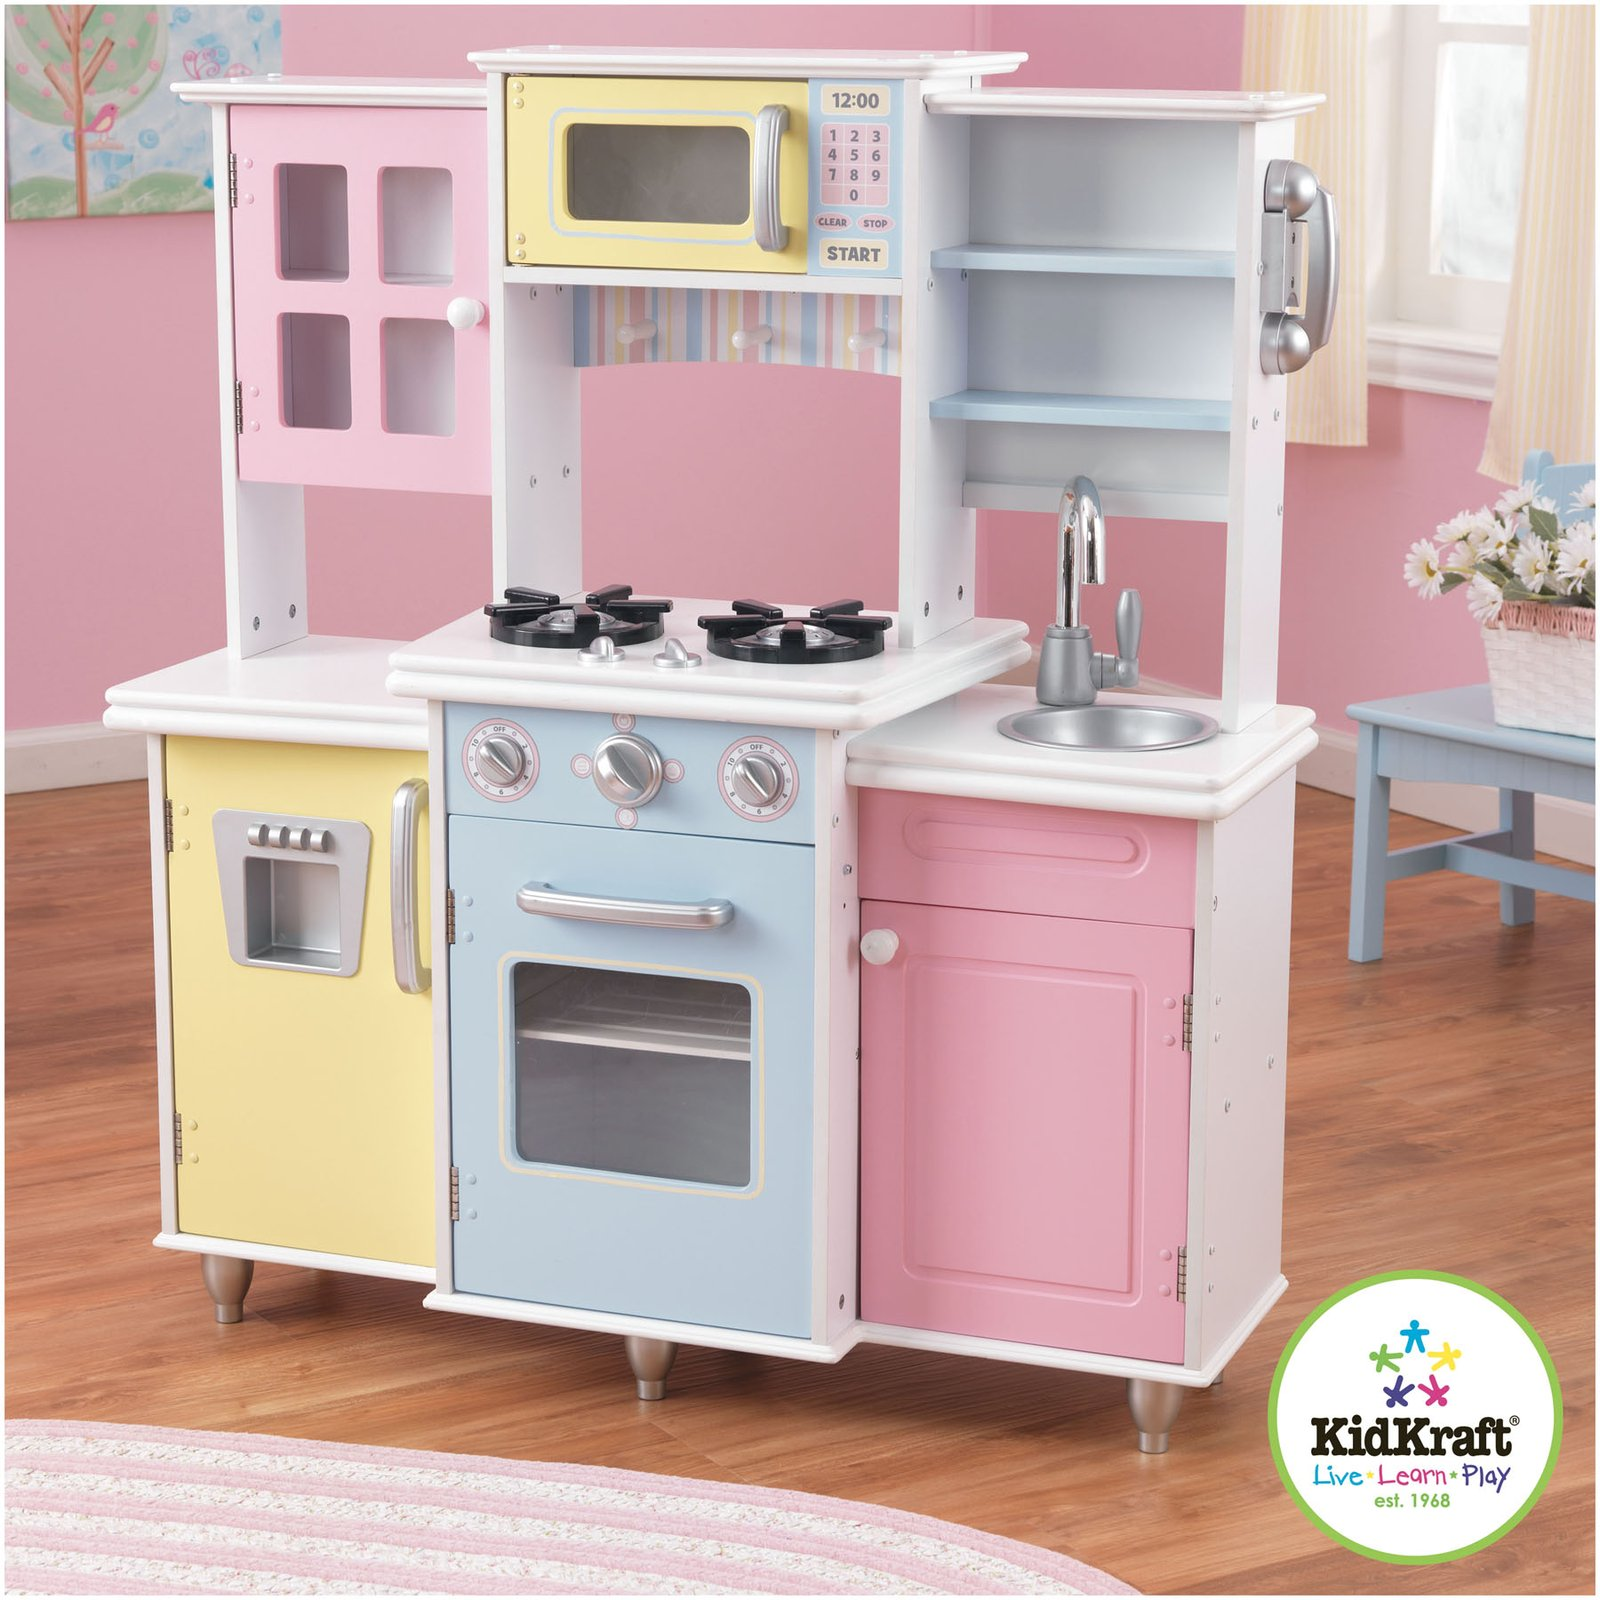 Kidkraft kitchen pink kitchen ideas for Kitchen kitchen set